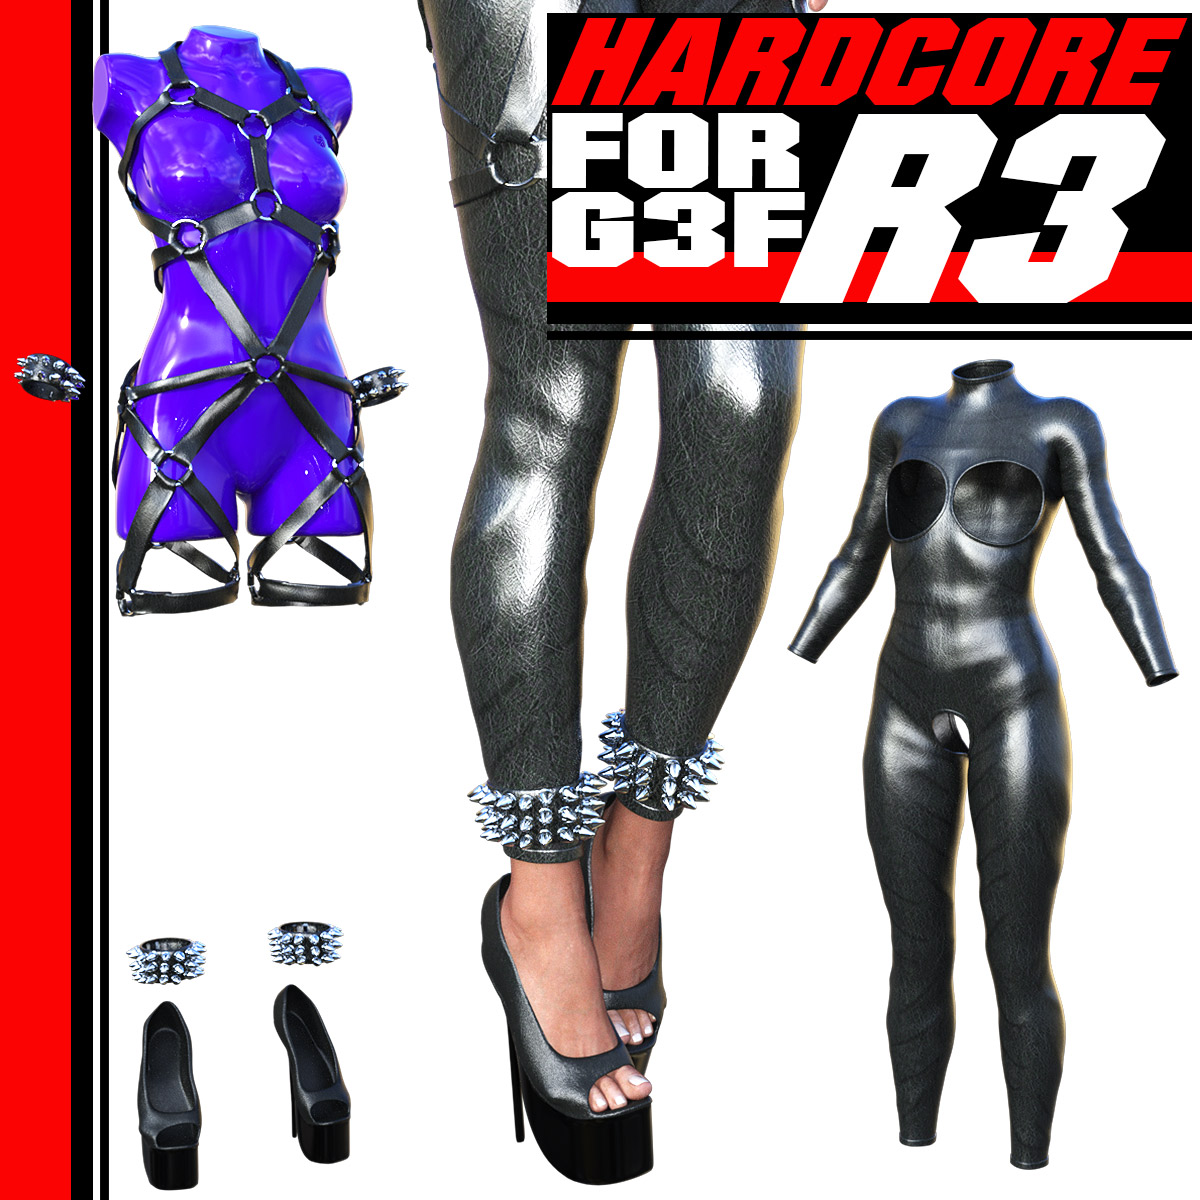 HARDCORE-R3 for G3 females